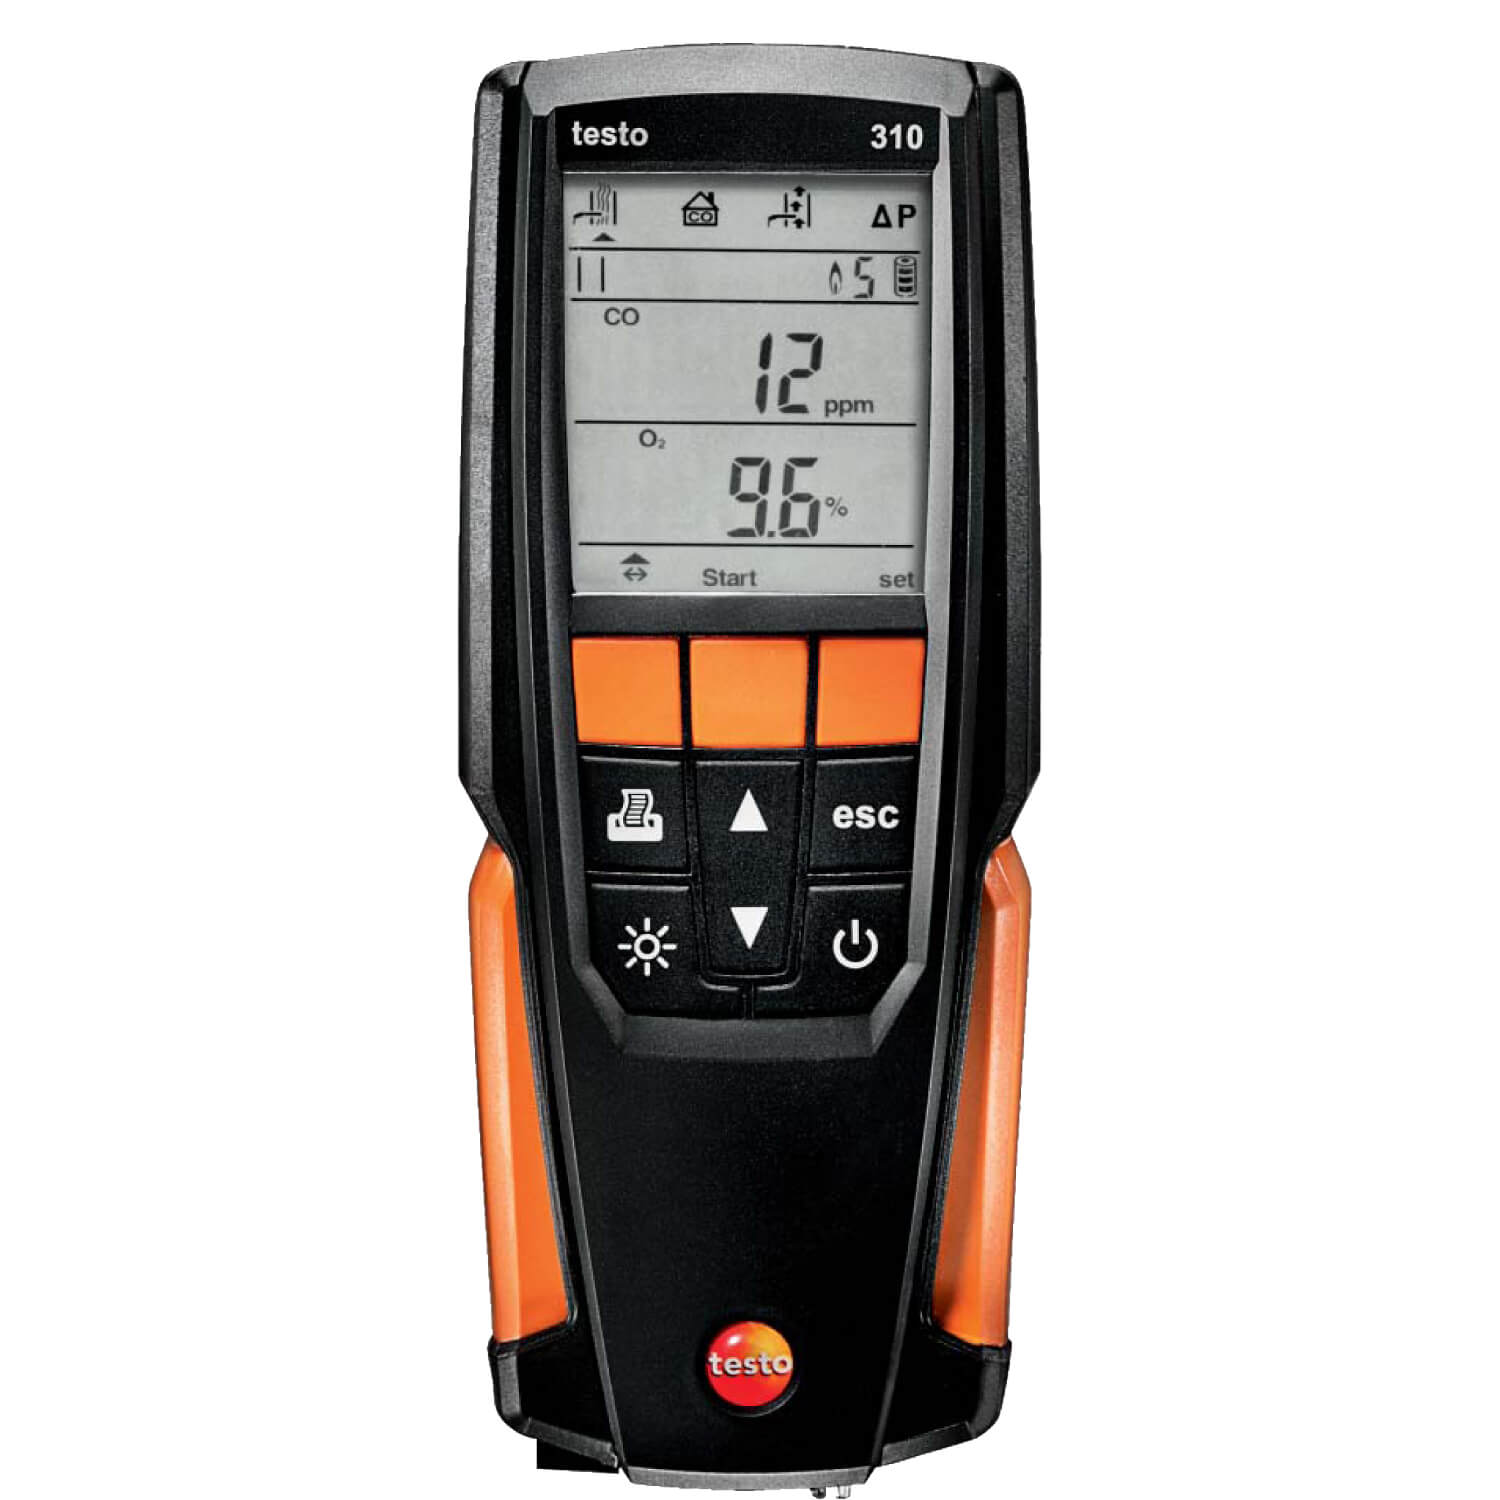 Testo 310 Combustion Analyzer for Residential Applications [Free 2nd Shipping]